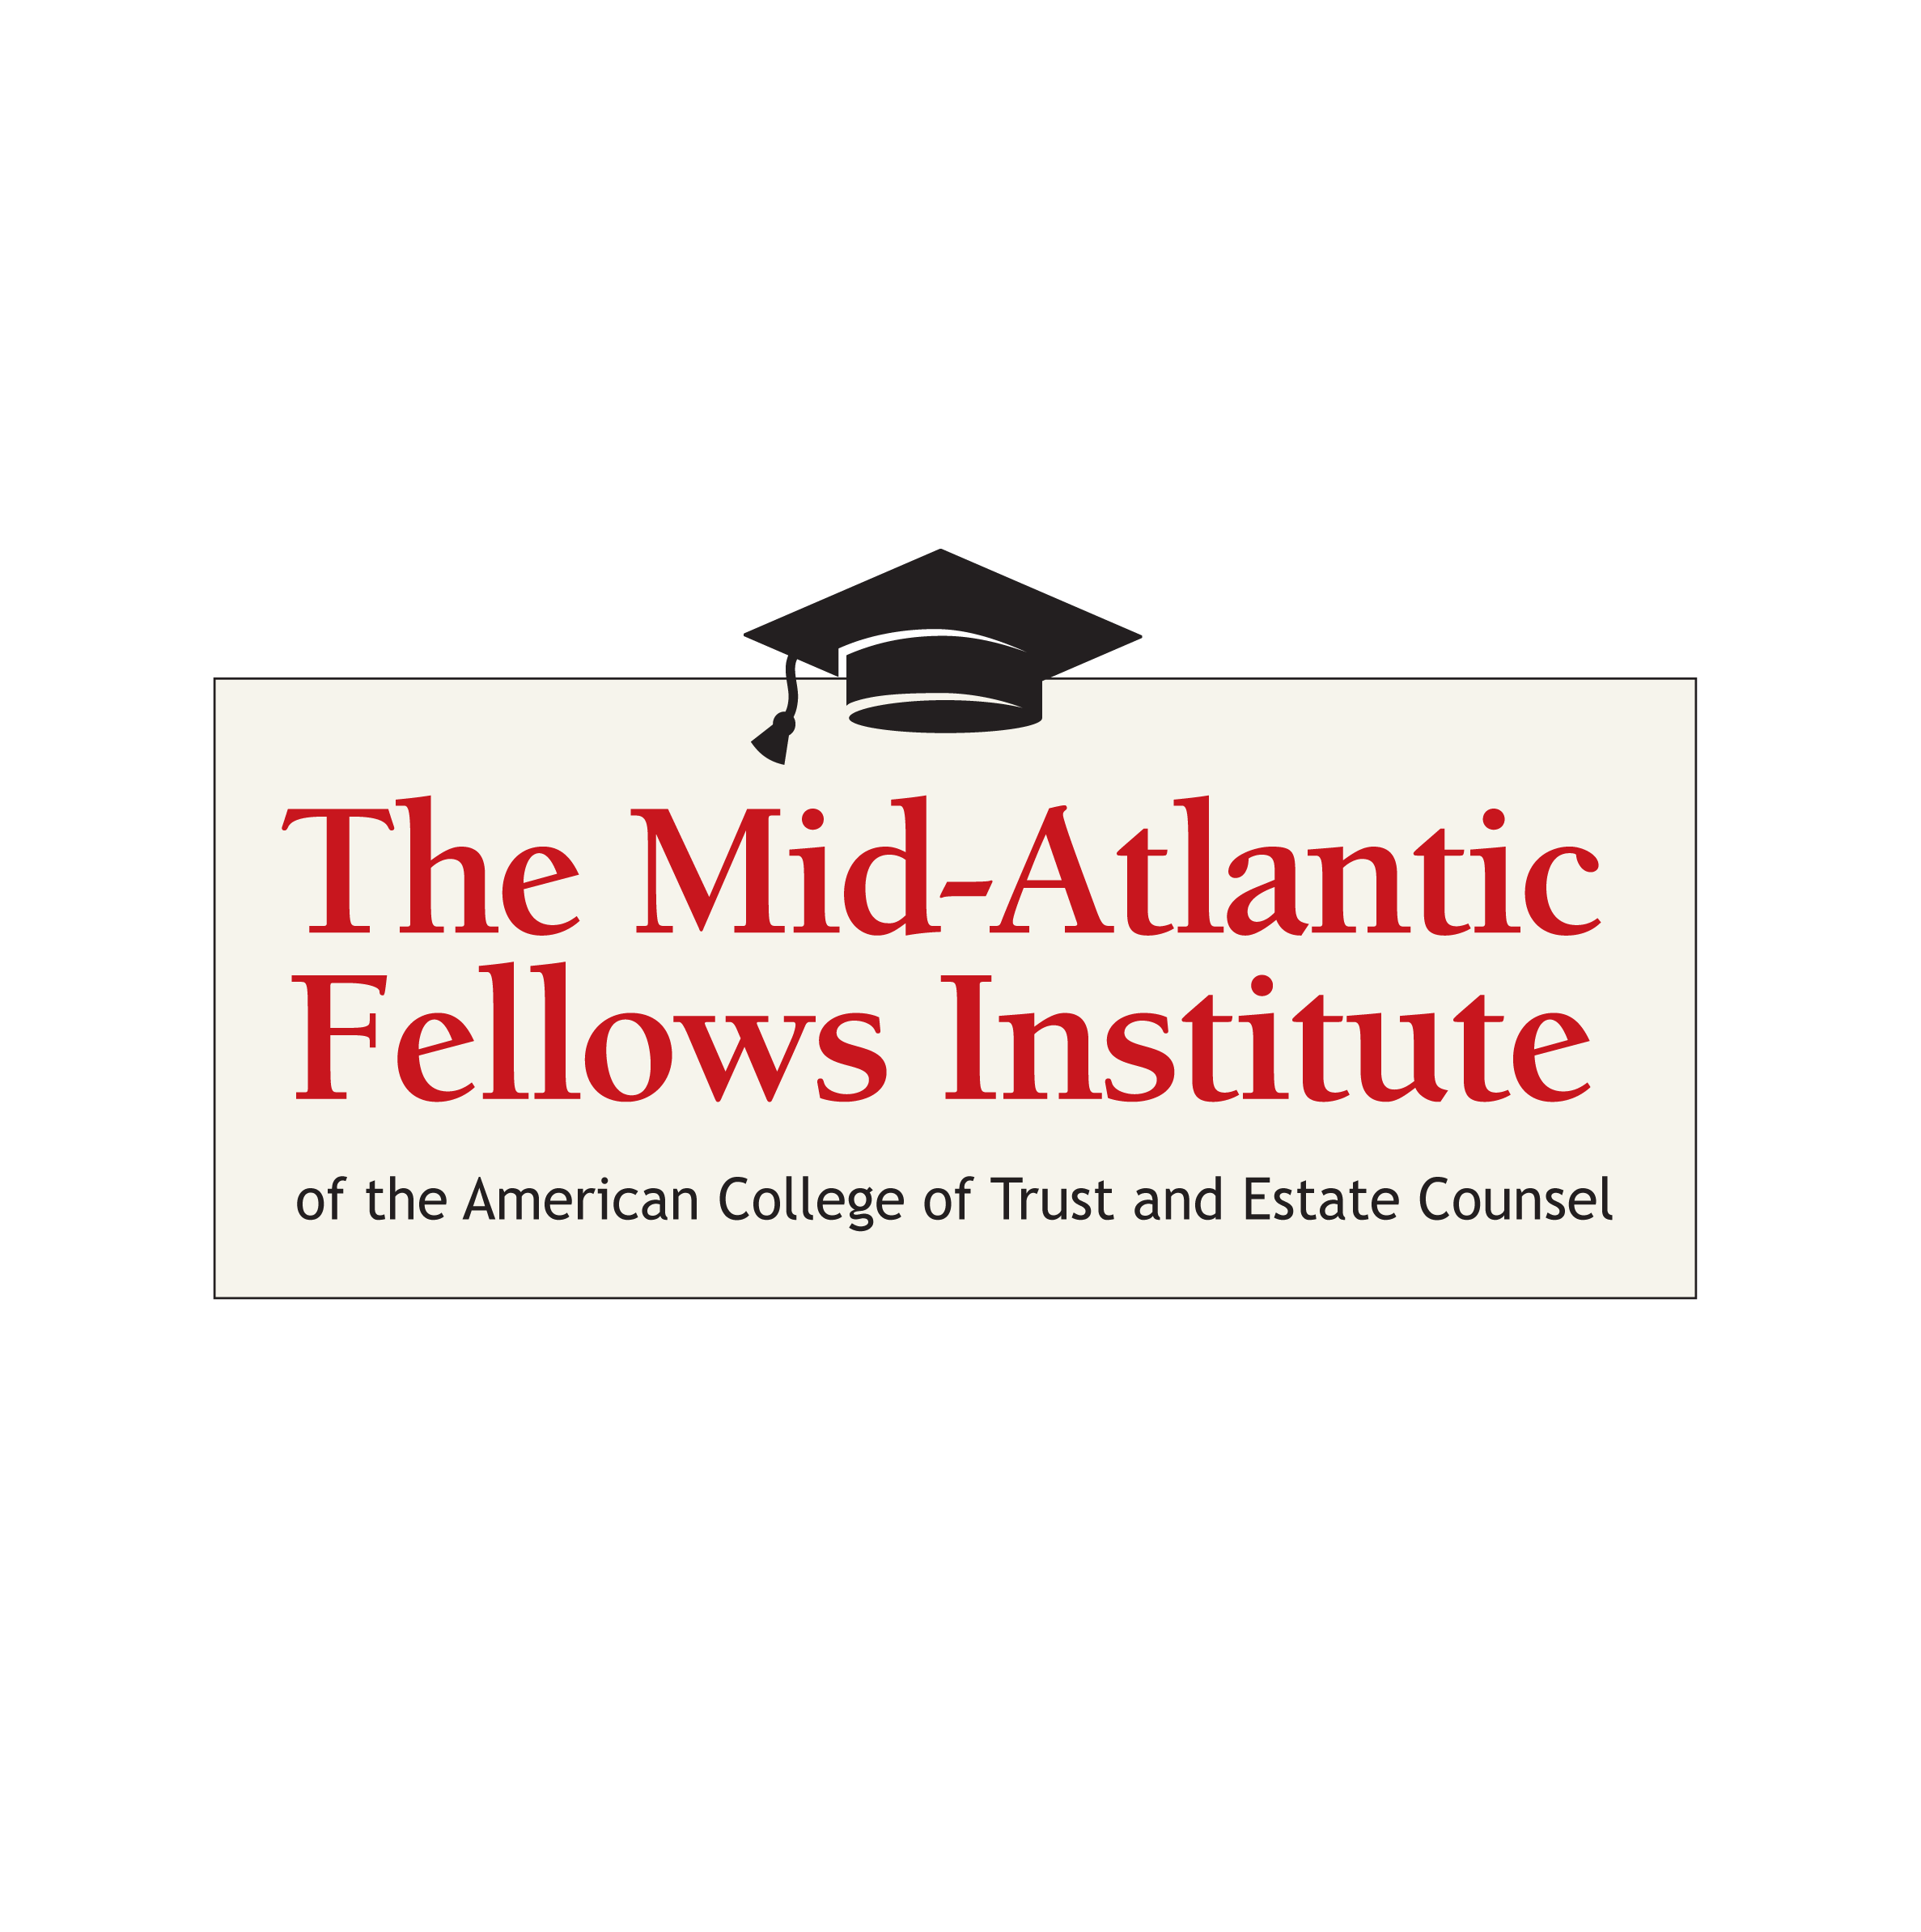 Mid-Atlantic Fellows Institute